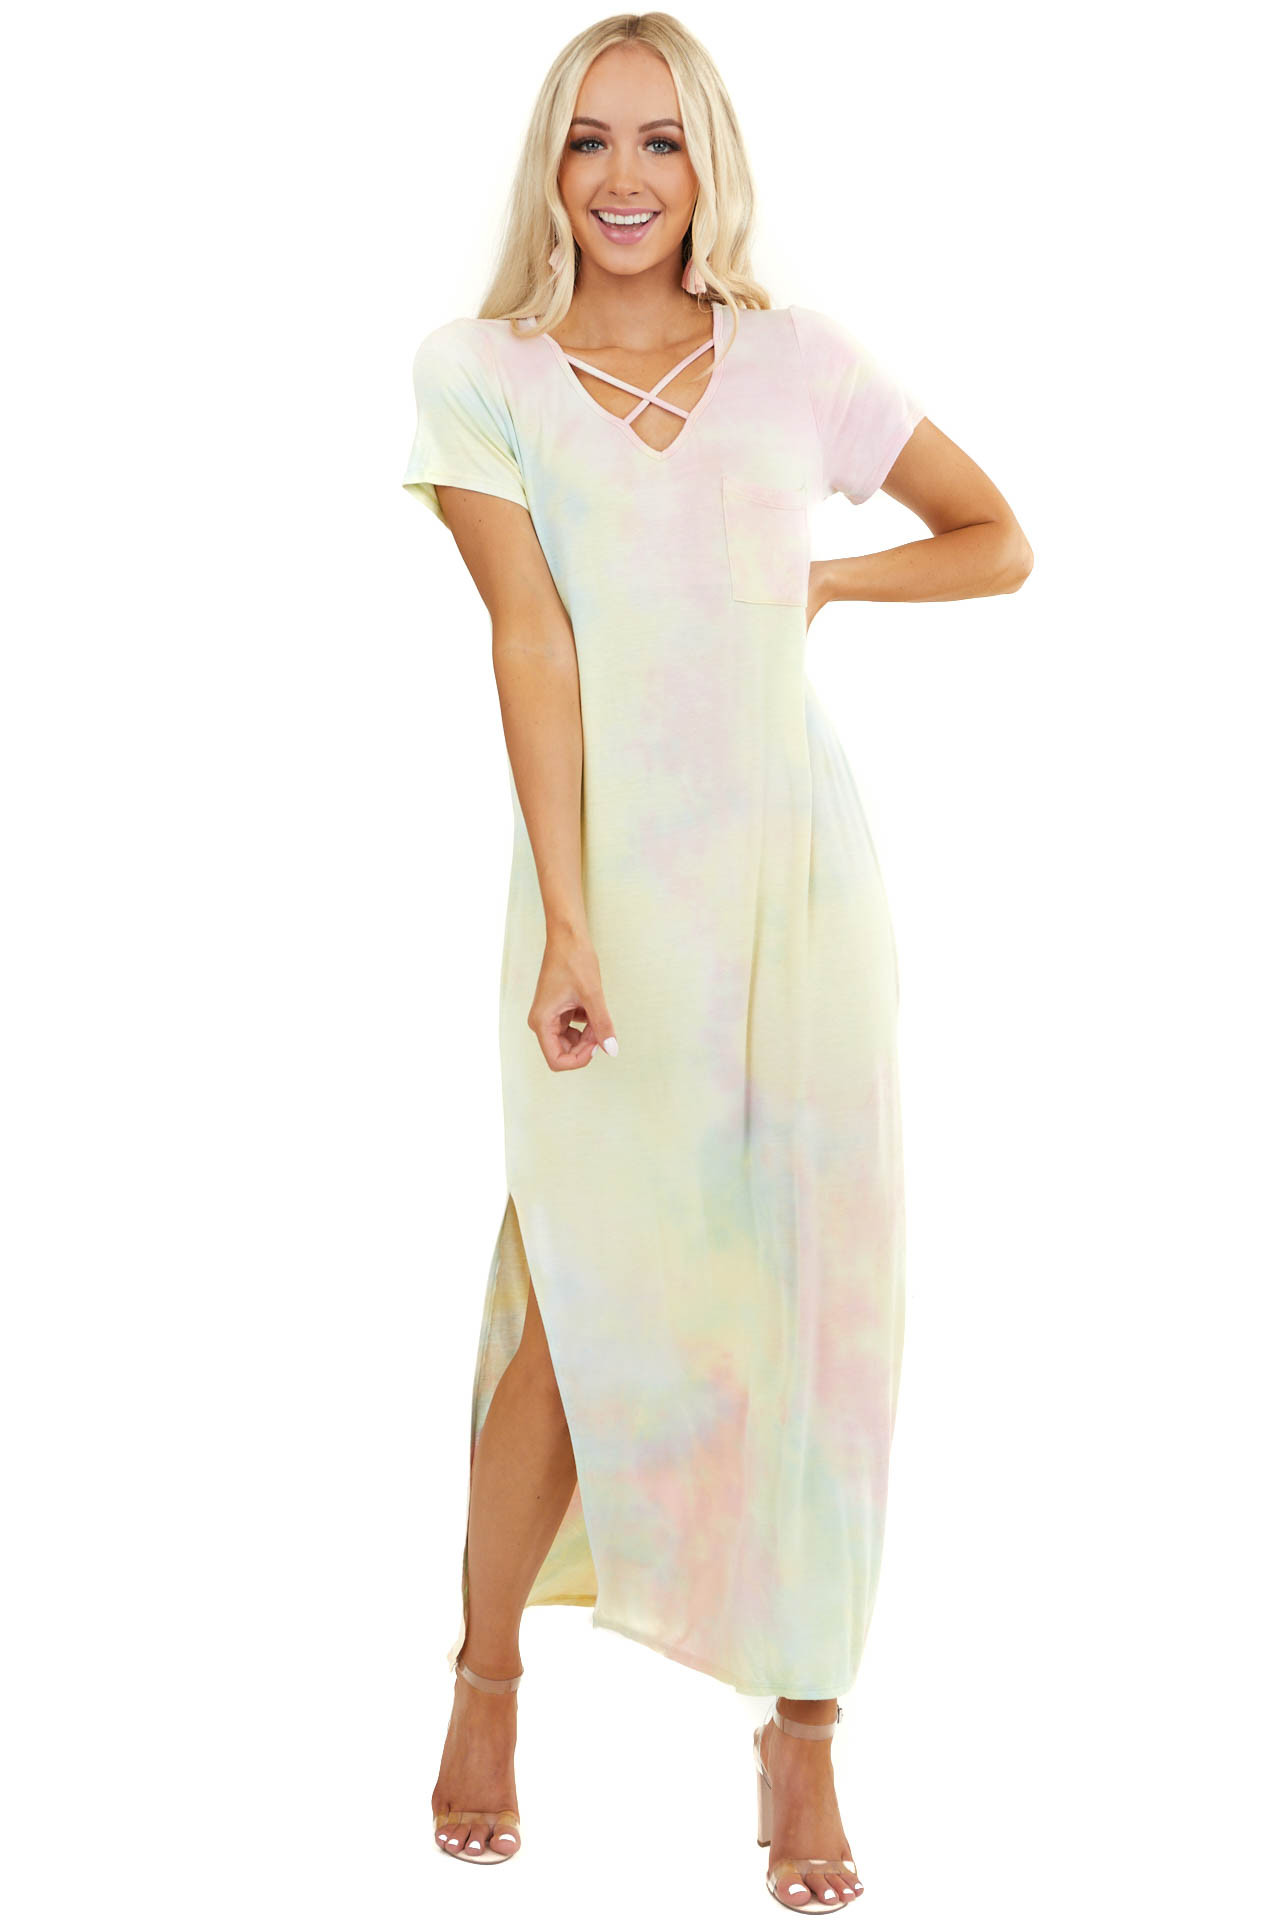 Pale Rainbow Tie Dye Maxi Dress with Criss Cross V Neck